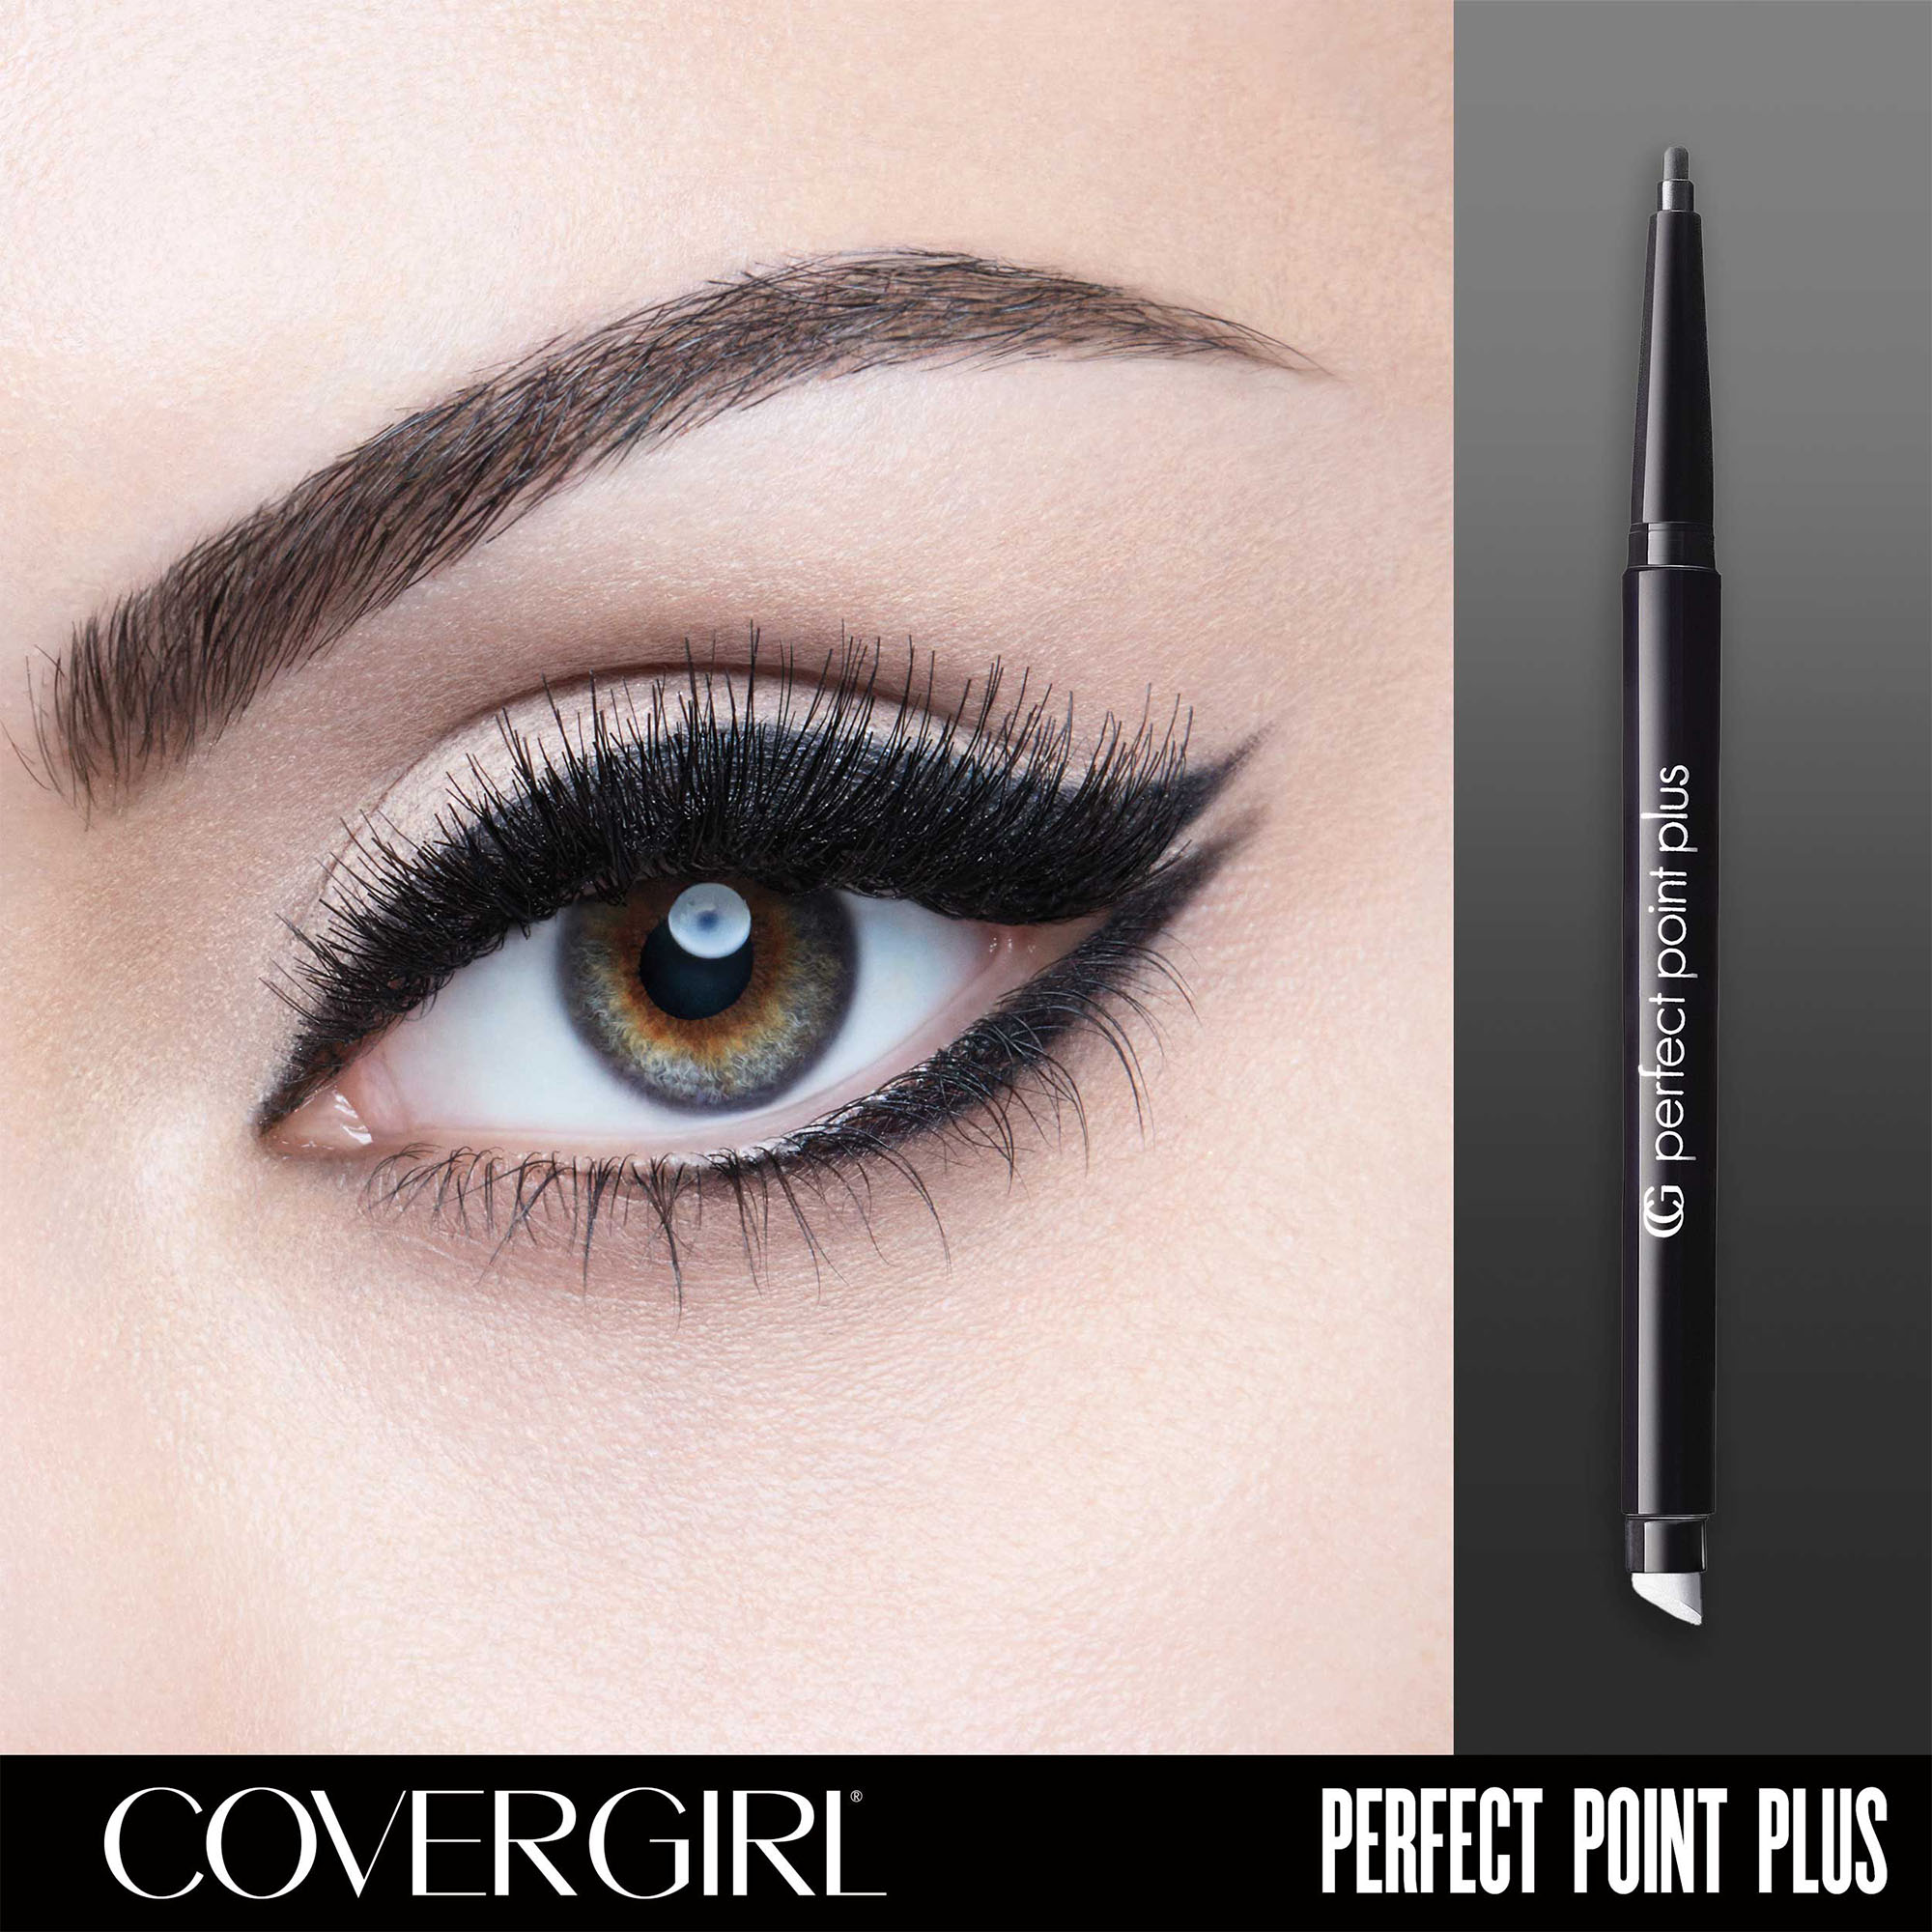 COVERGIRL Perfect Point PLUS Eyeliner, Black Onyx, .008 oz